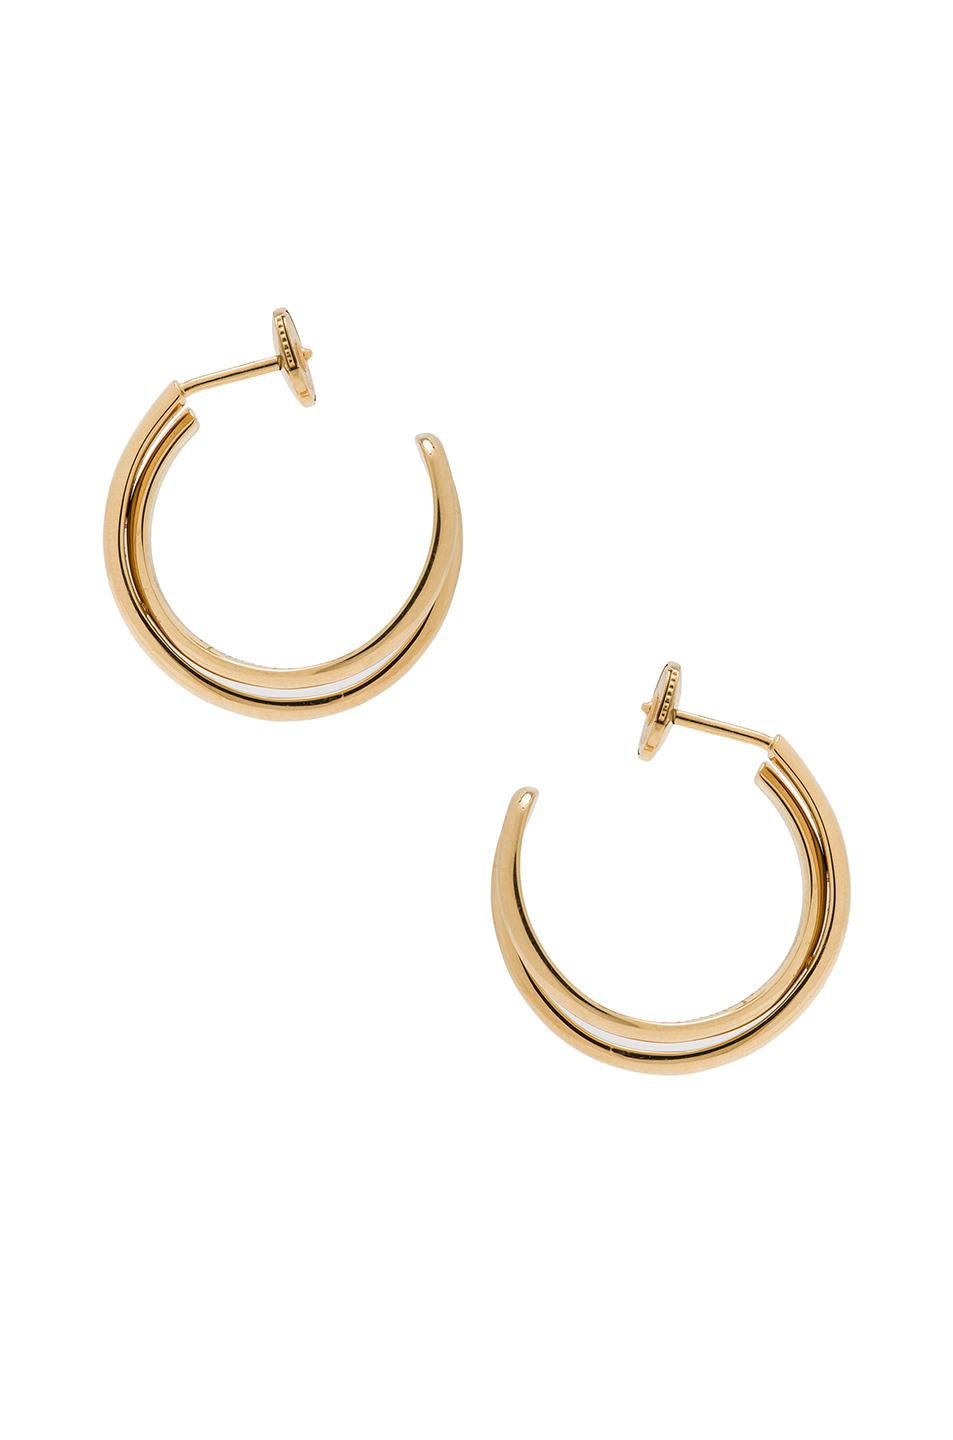 Maison Martin Margiela Fine Twisted Earrings in Metallics j5mIl6G